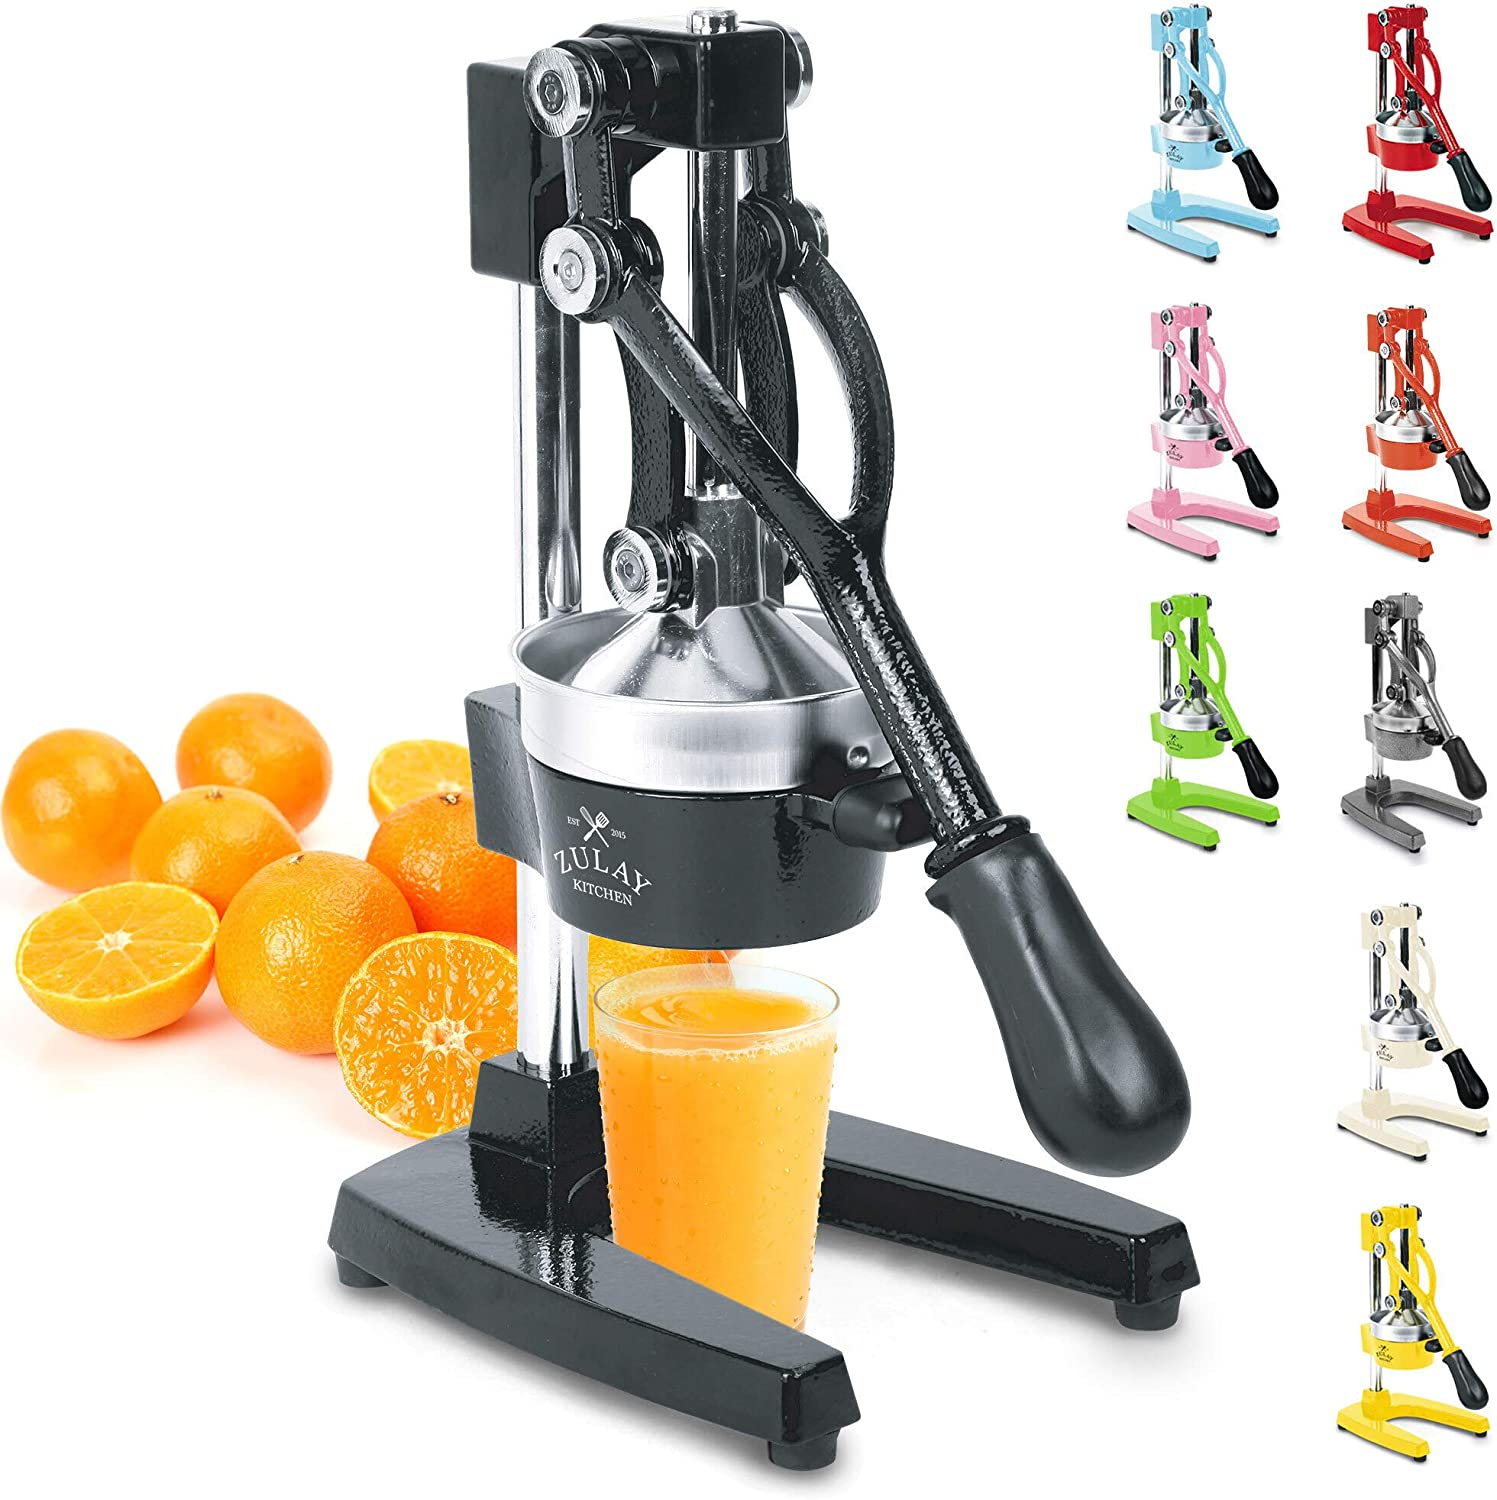 81aNmigq6aL. AC SL1500 Best Hand Press Juicer 2021 Review